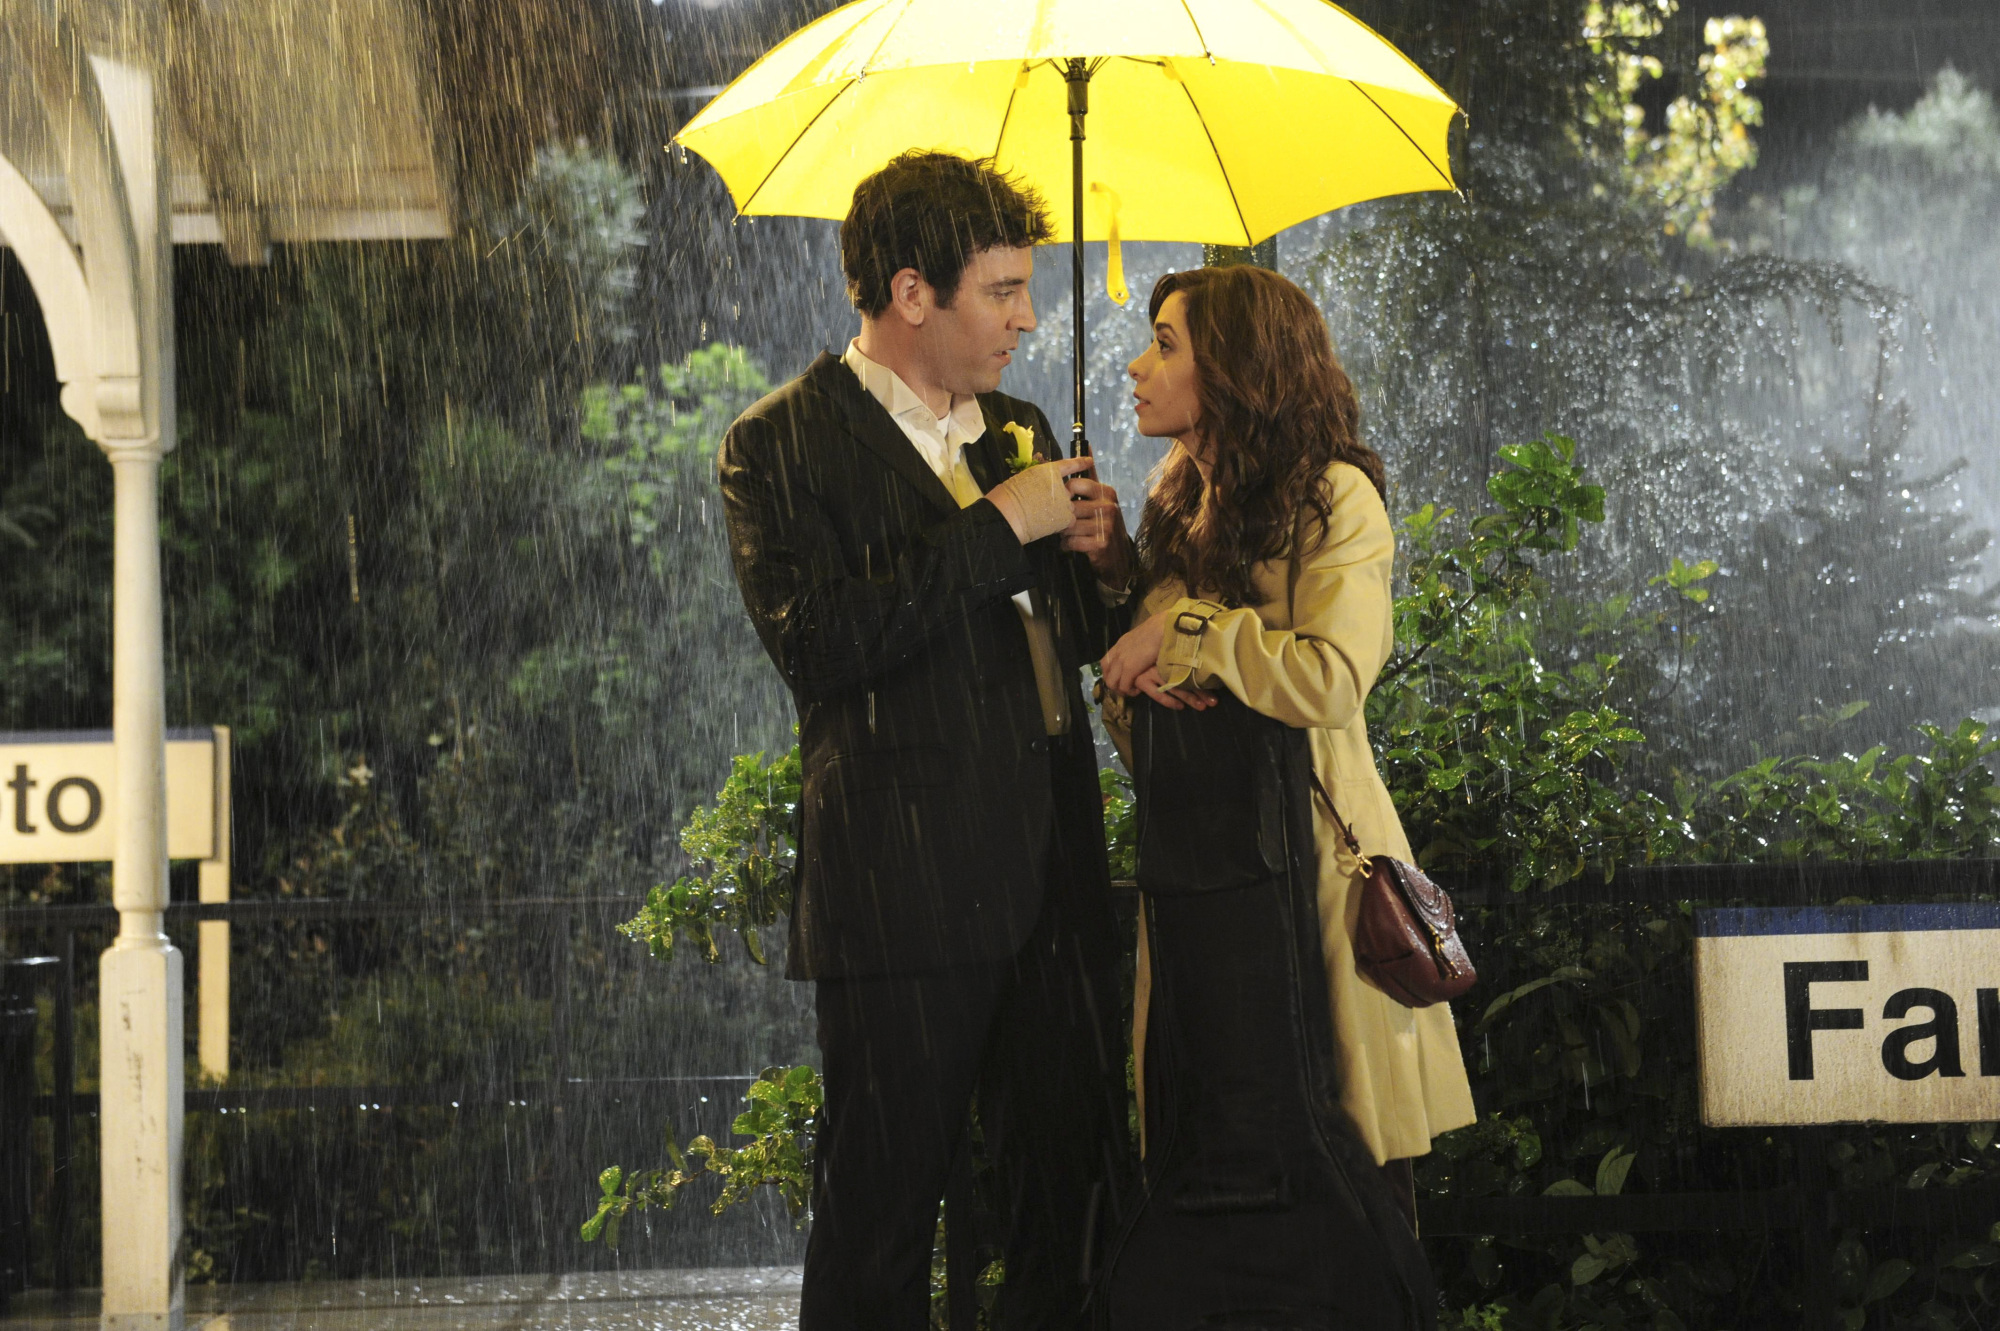 From left: Josh Radnor as Ted and Cristin Milioti as Tracy in the finale of How I Met Your Mother.